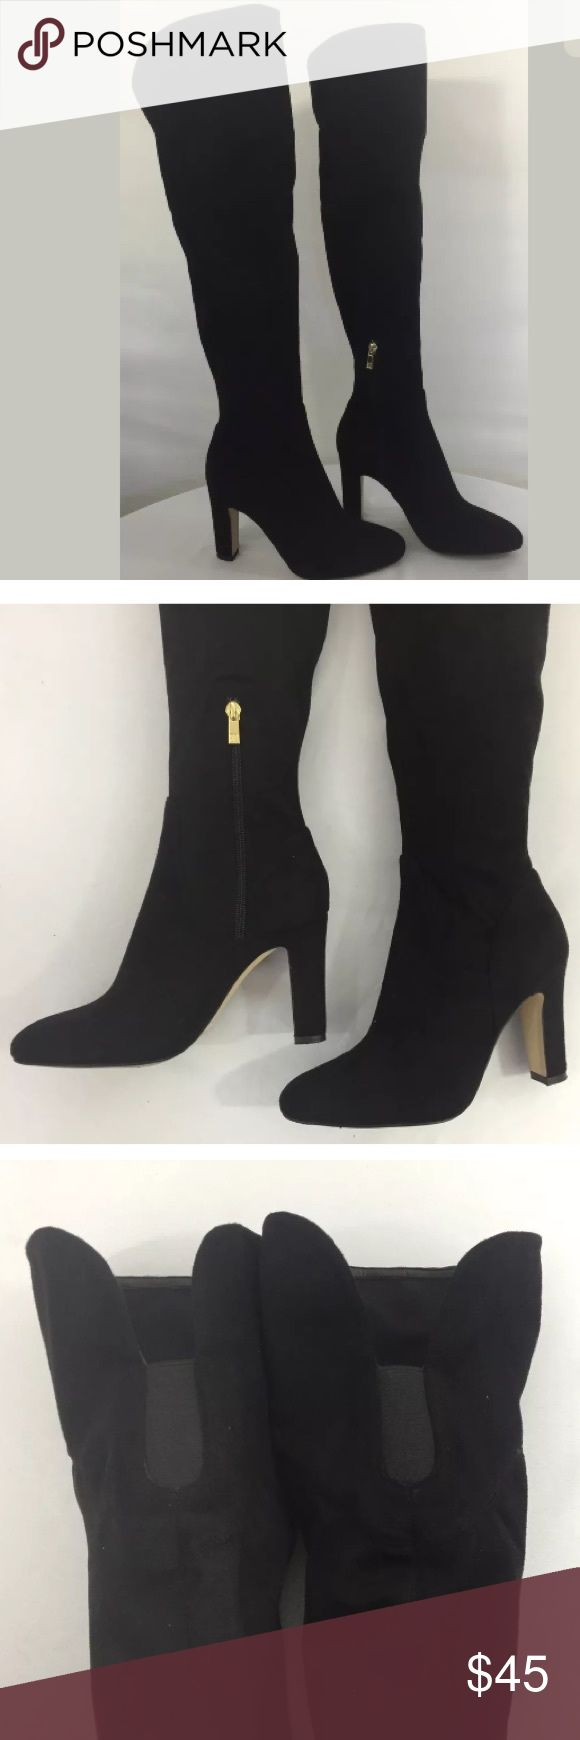 """Sale!🔥Ivanka Trump Over The Knee Thigh High Boots Sexy and chic Ivanka Trump black suede over the knee boots. Zipper with gold hardware at inner ankle. Beautiful boots, no signs of damage other than one very minor scuff on the back of the left boot. Overall these boots are in excellent pre-owned condition. SIZE 7 1/2 Height (including heel): approx. 23 1/2"""" Heel height: 3 3/4"""" Ivanka Trump Shoes Over the Knee Boots"""